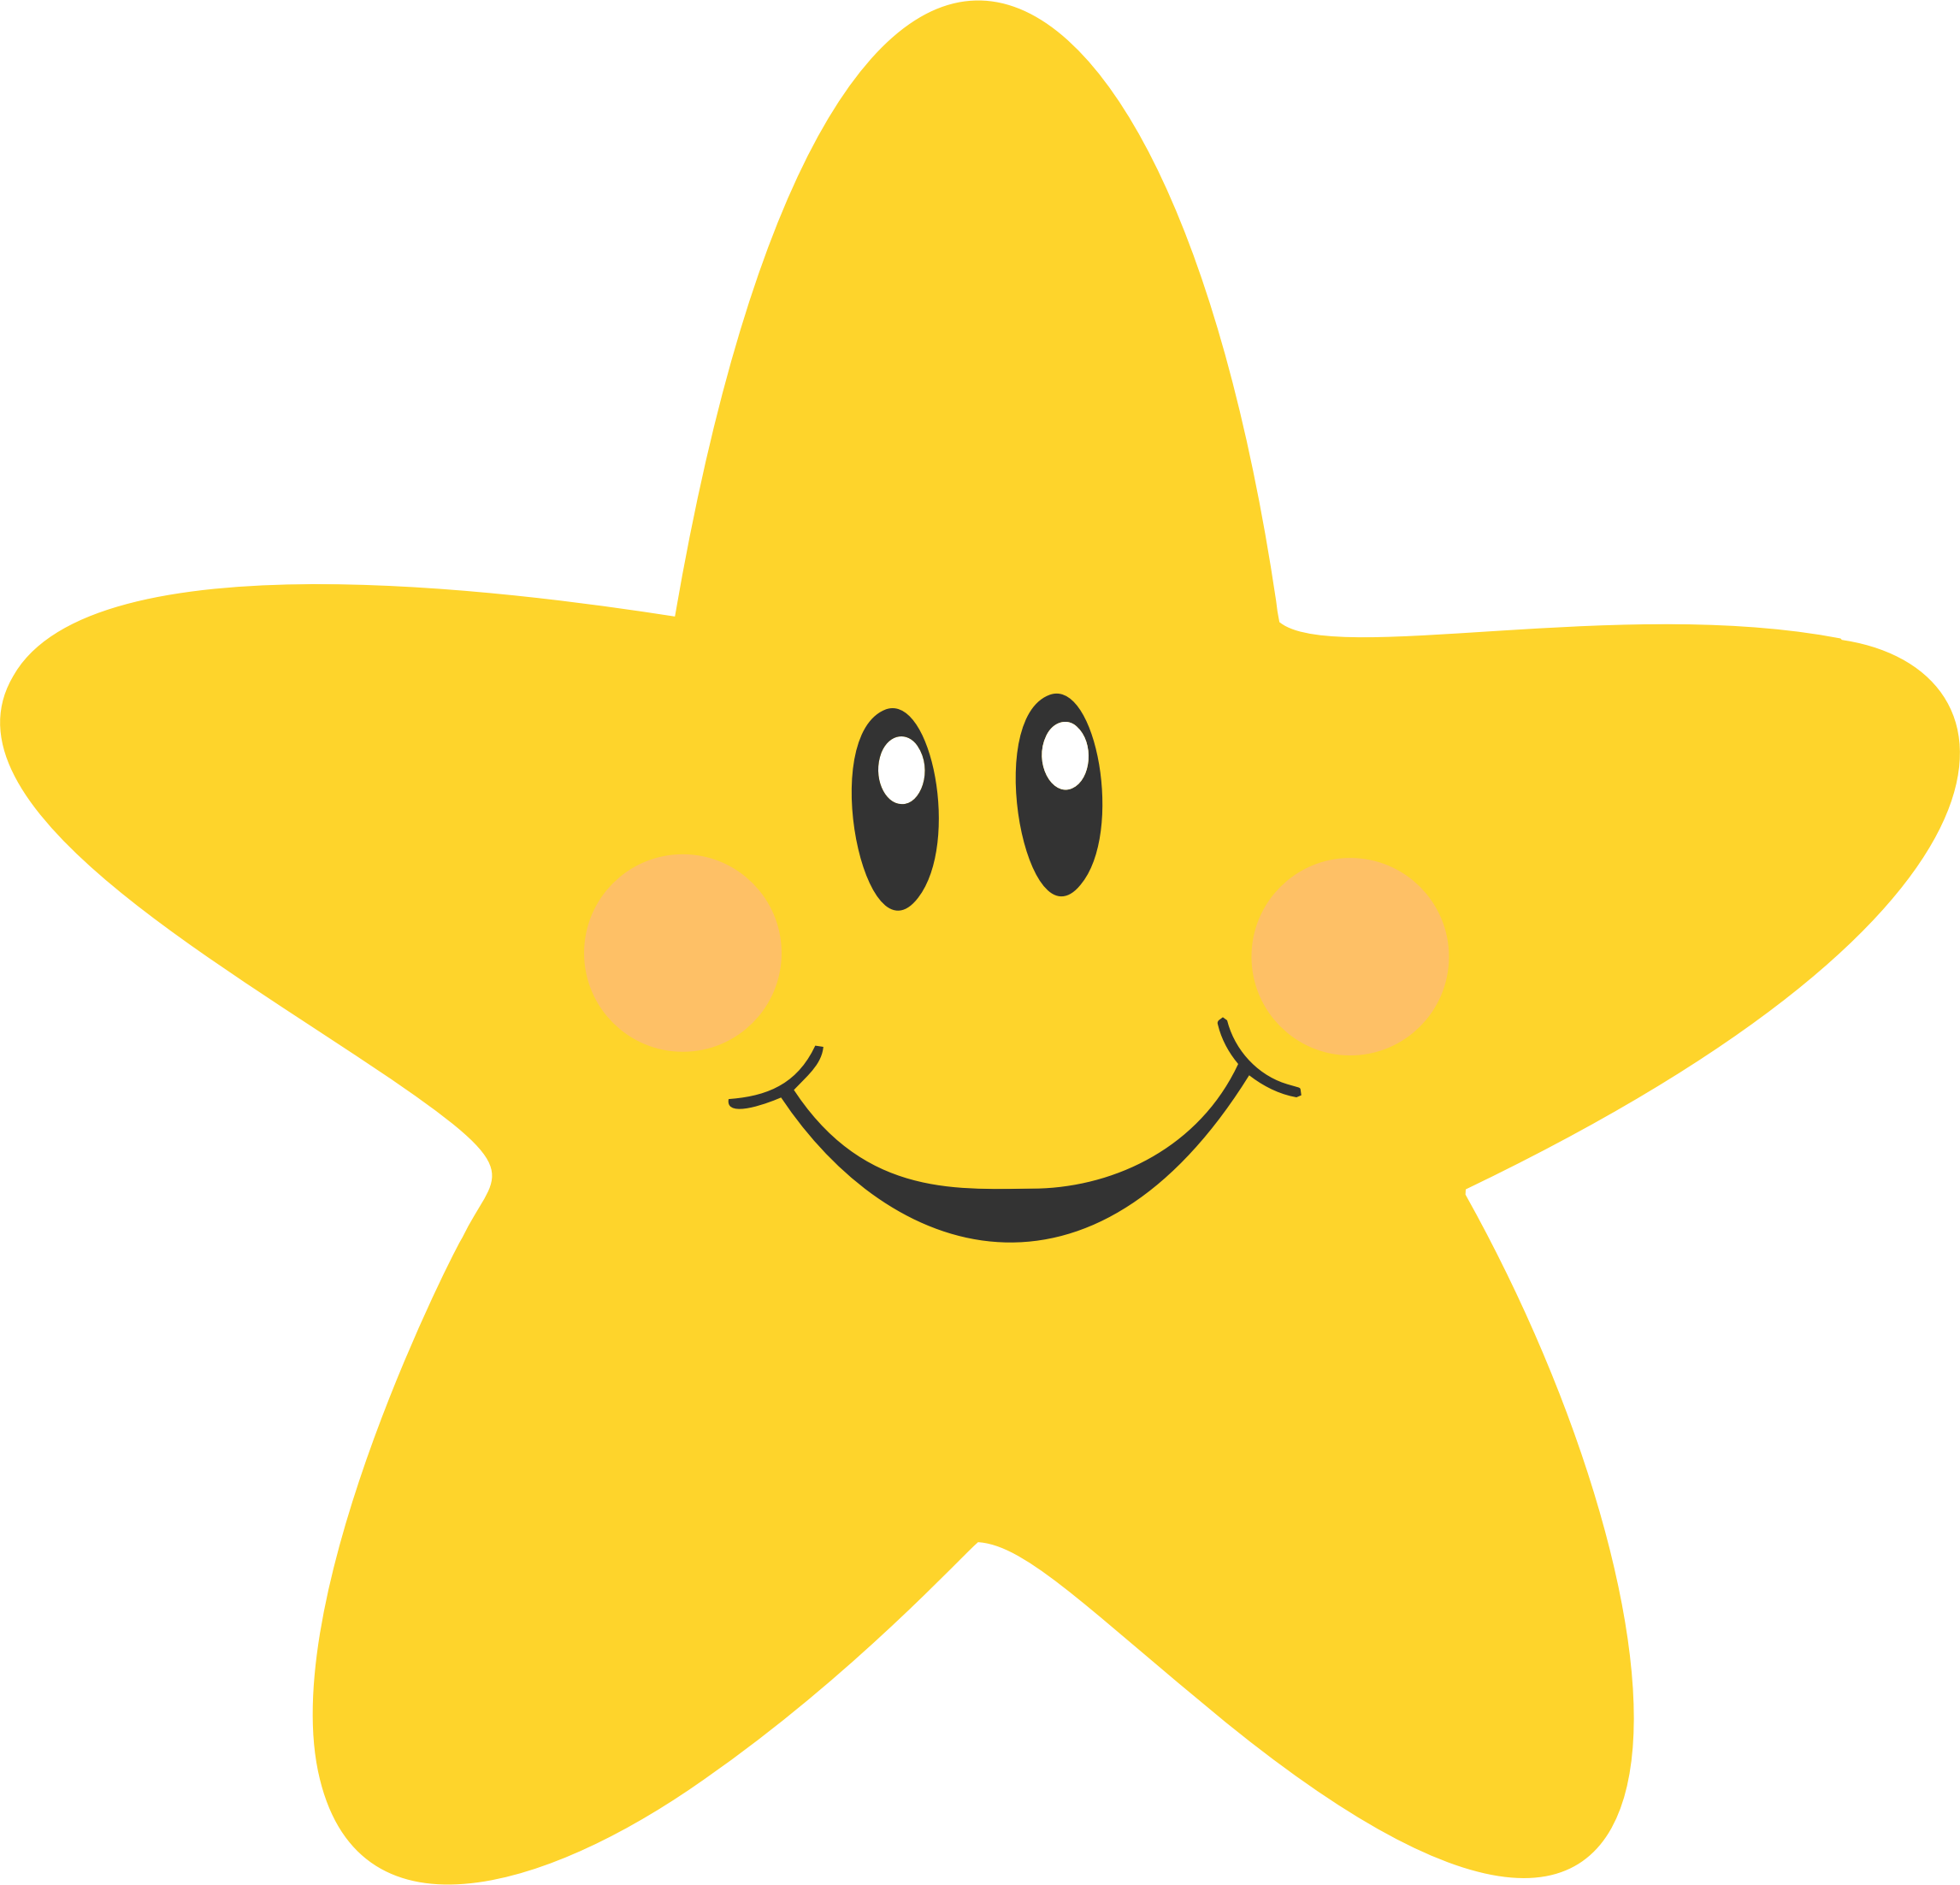 Star cartoon clipart clipart free download Clipart - Smiling Star clipart free download